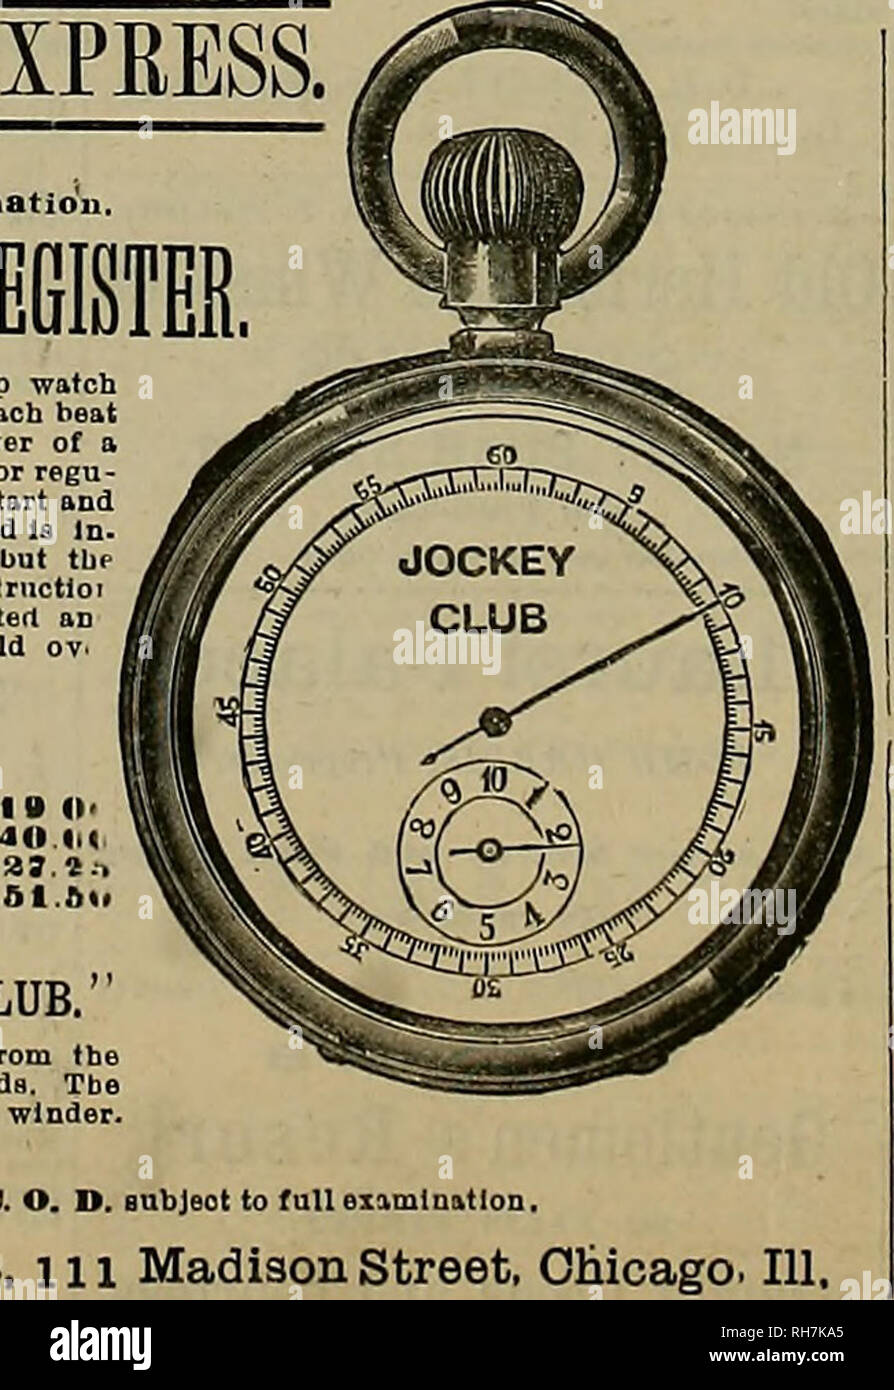 """. Breeder and sportsman. Horses. HTTiL""""HE mSTHE EXPRESS. No money required until after full examination. HORSE TIER Al MINUTE REGISTER Chronograph watch which combines an accurate stop watch for sporting, timing horses, boat races, doctors, where each beat of the pulse 1b timed, and where accurate time (quarter of a second) Is necessary. With a p«*rfert time-keeper for regu- lar use, same as any other watch, the mechanism to start and stop 1b of the most elmple and durable construction, and la In. dependent of the other parts of the movement. None but the very beat material obtainable Is - Stock Image"""